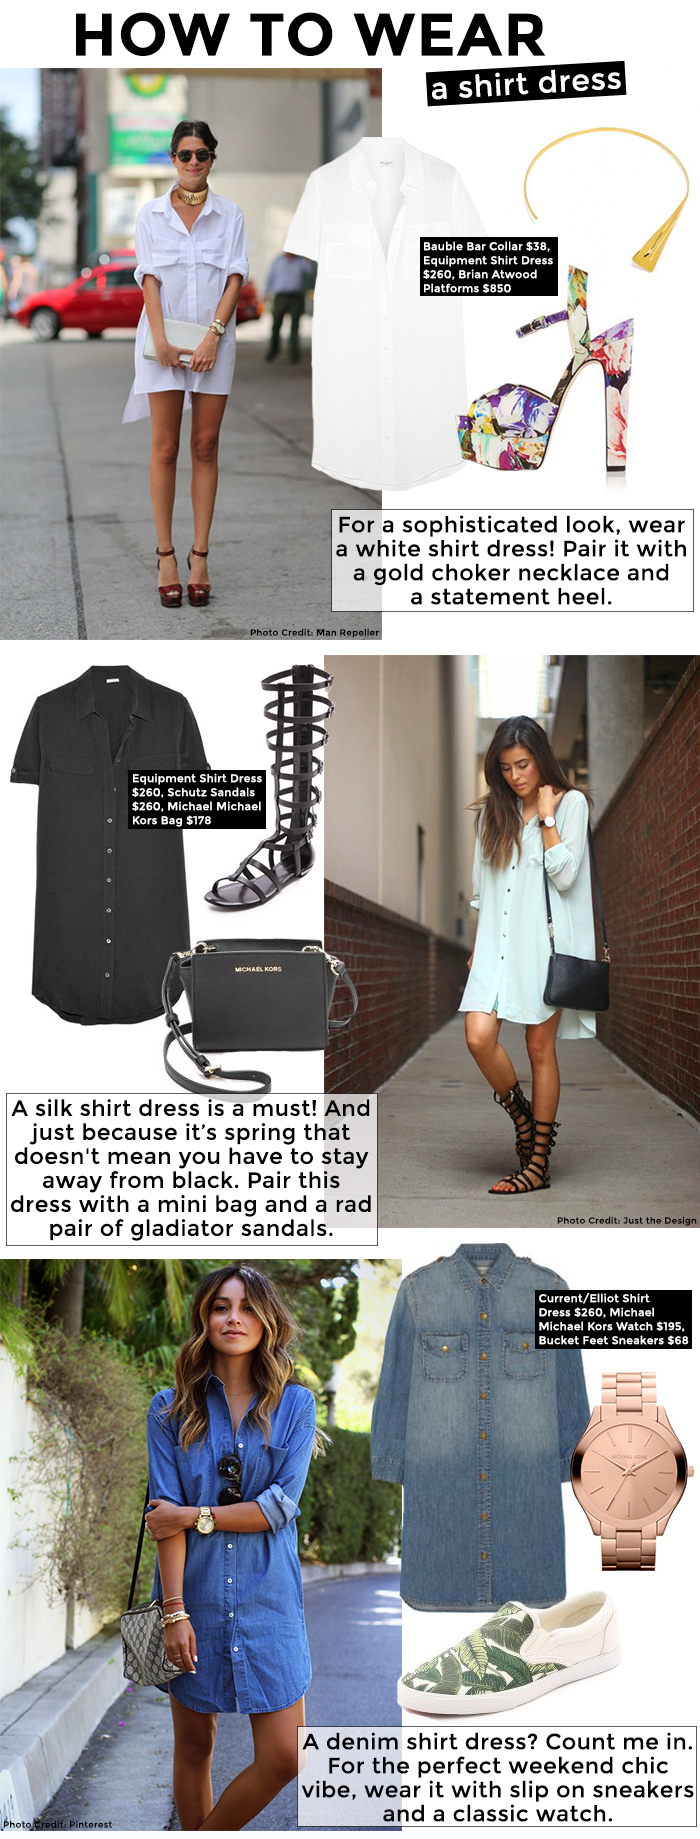 How-to-Wear-a-Shirt-Dress